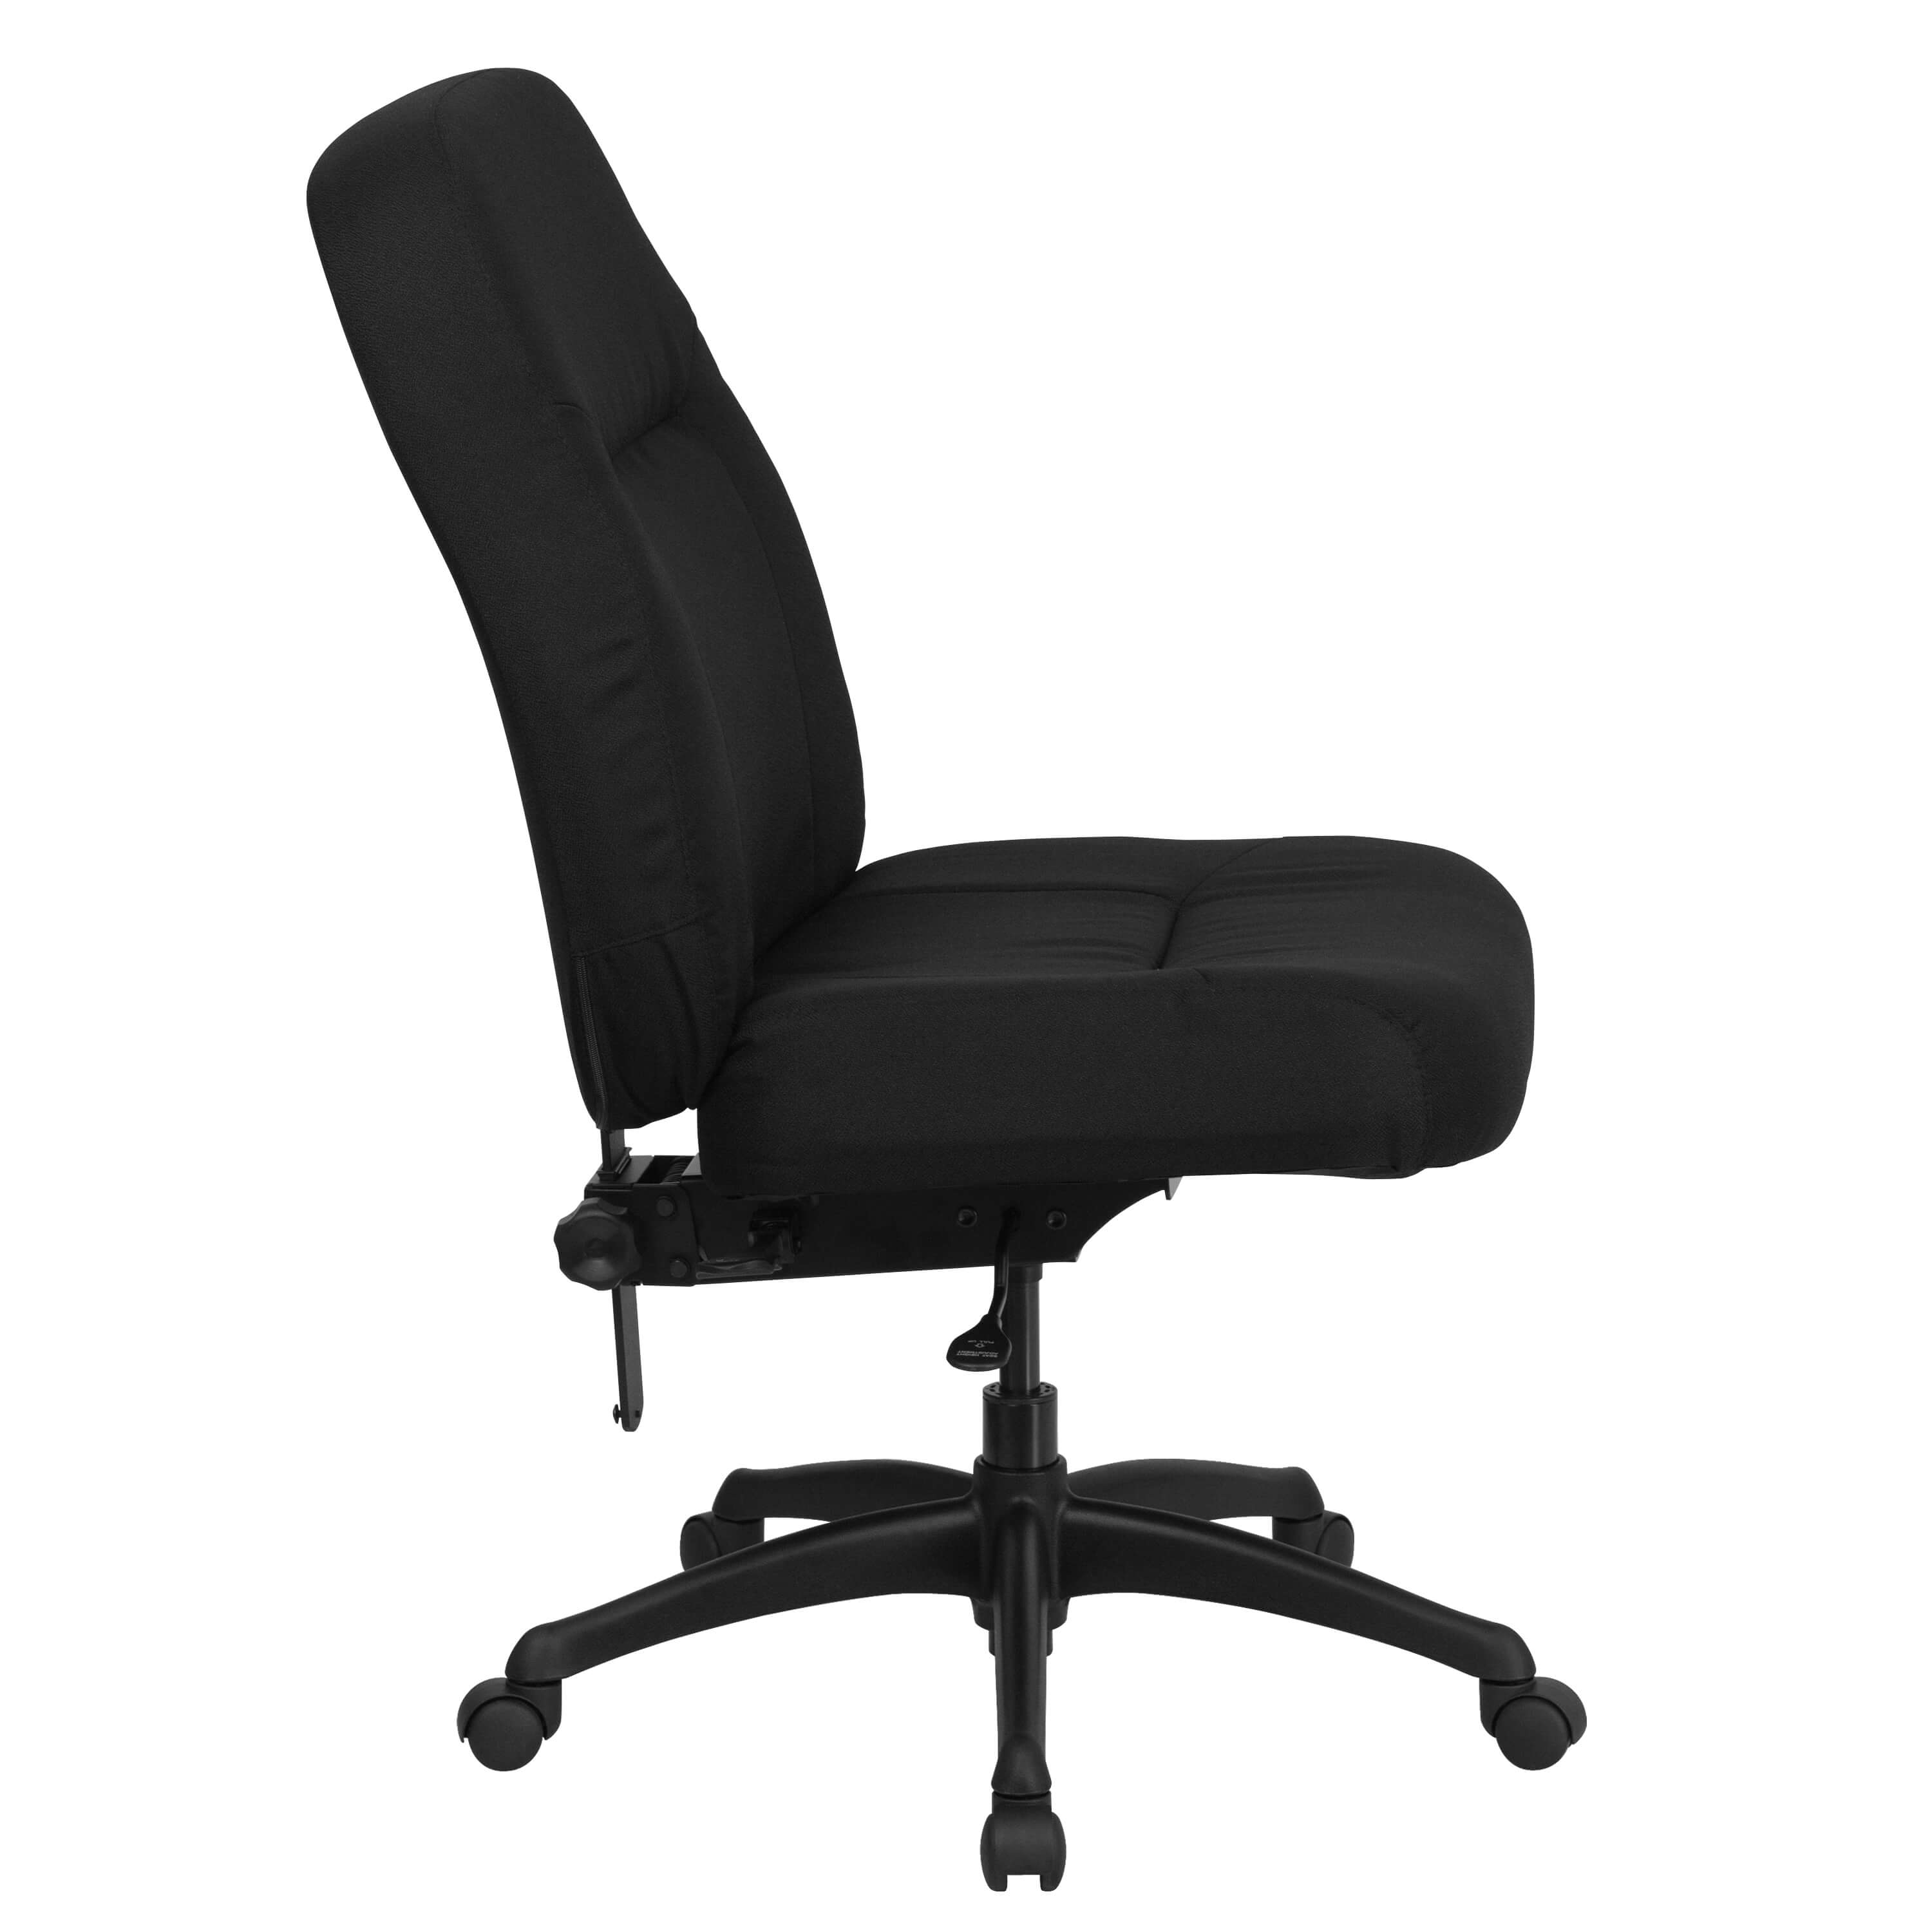 400 lb capacity office chair side view